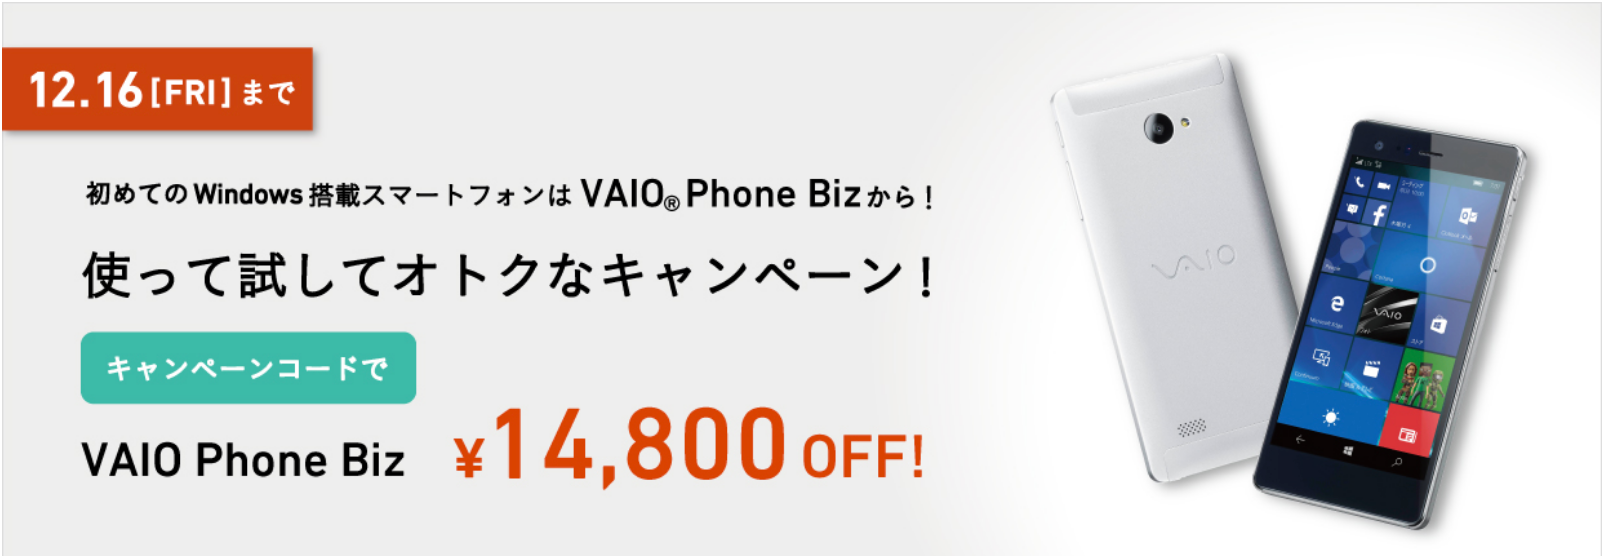 Vaiophone